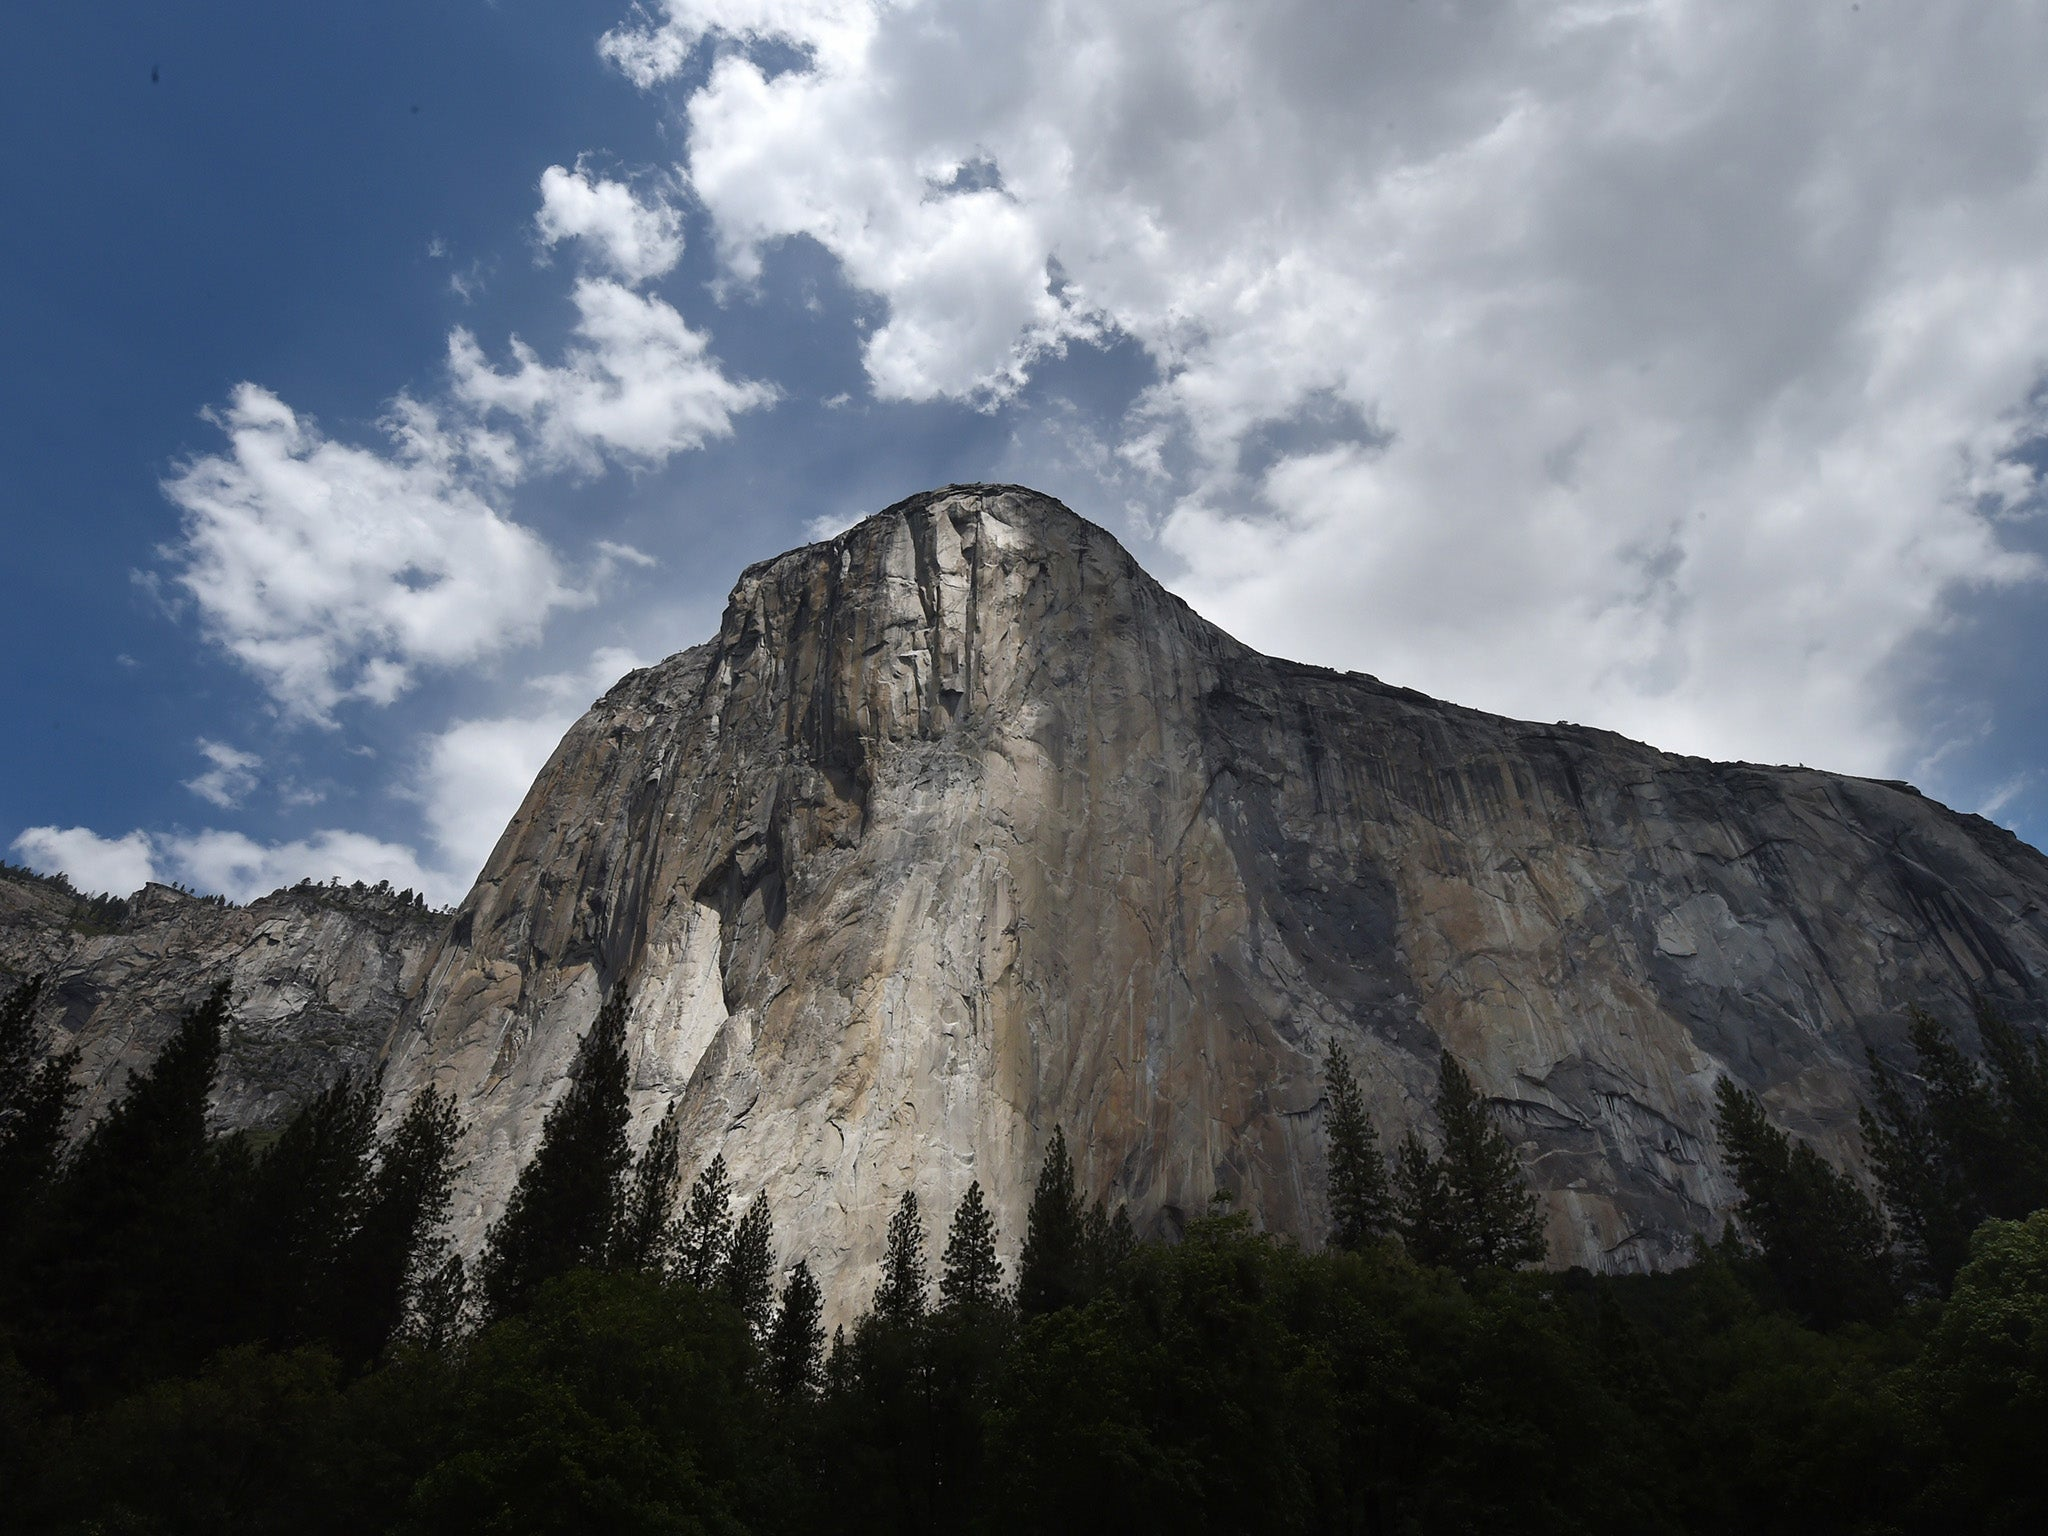 British climber dies after being crushed by falling rocks in Yosemite